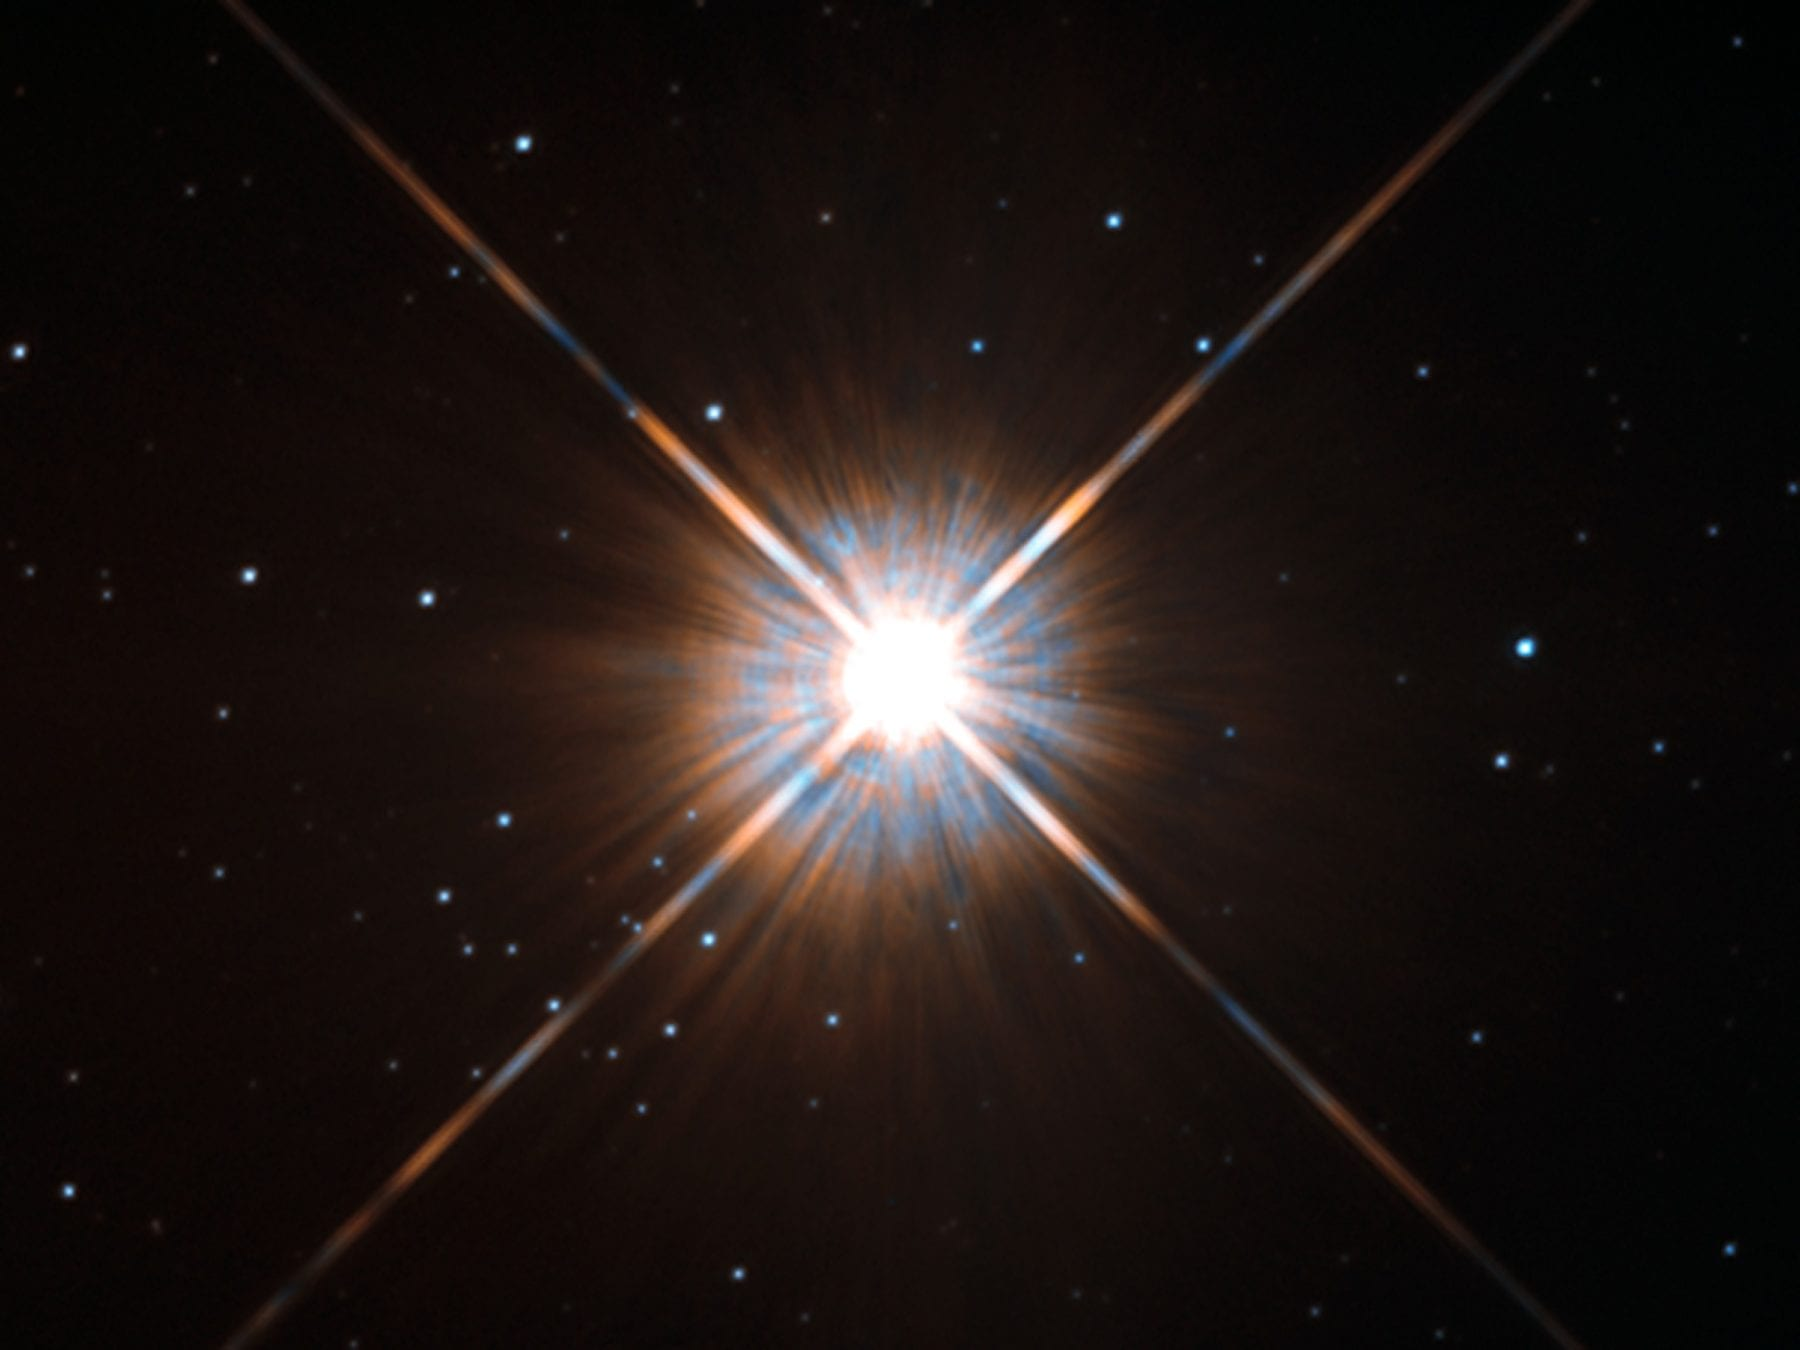 Shining brightly in this Hubble image is our closest stellar neighbour: Proxima Centauri. Proxima Centauri lies in the constellation of Centaurus (The Centaur), just over four light-years from Earth. via en.wikipedia.org